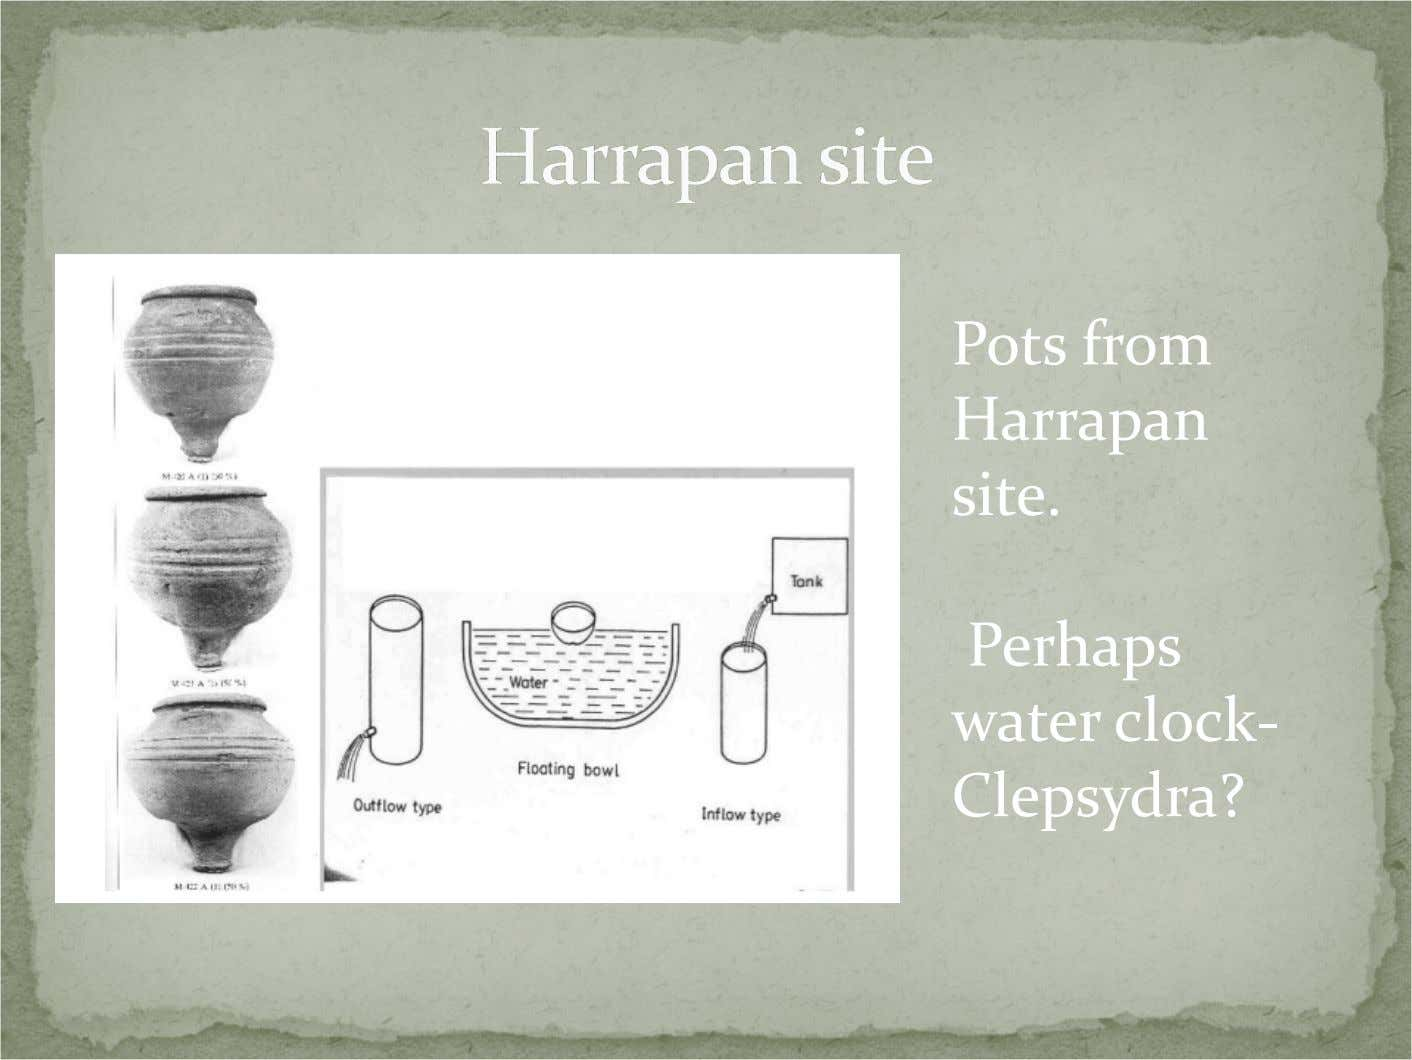 Pots from Harrapan site. Perhaps water clock- Clepsydra?